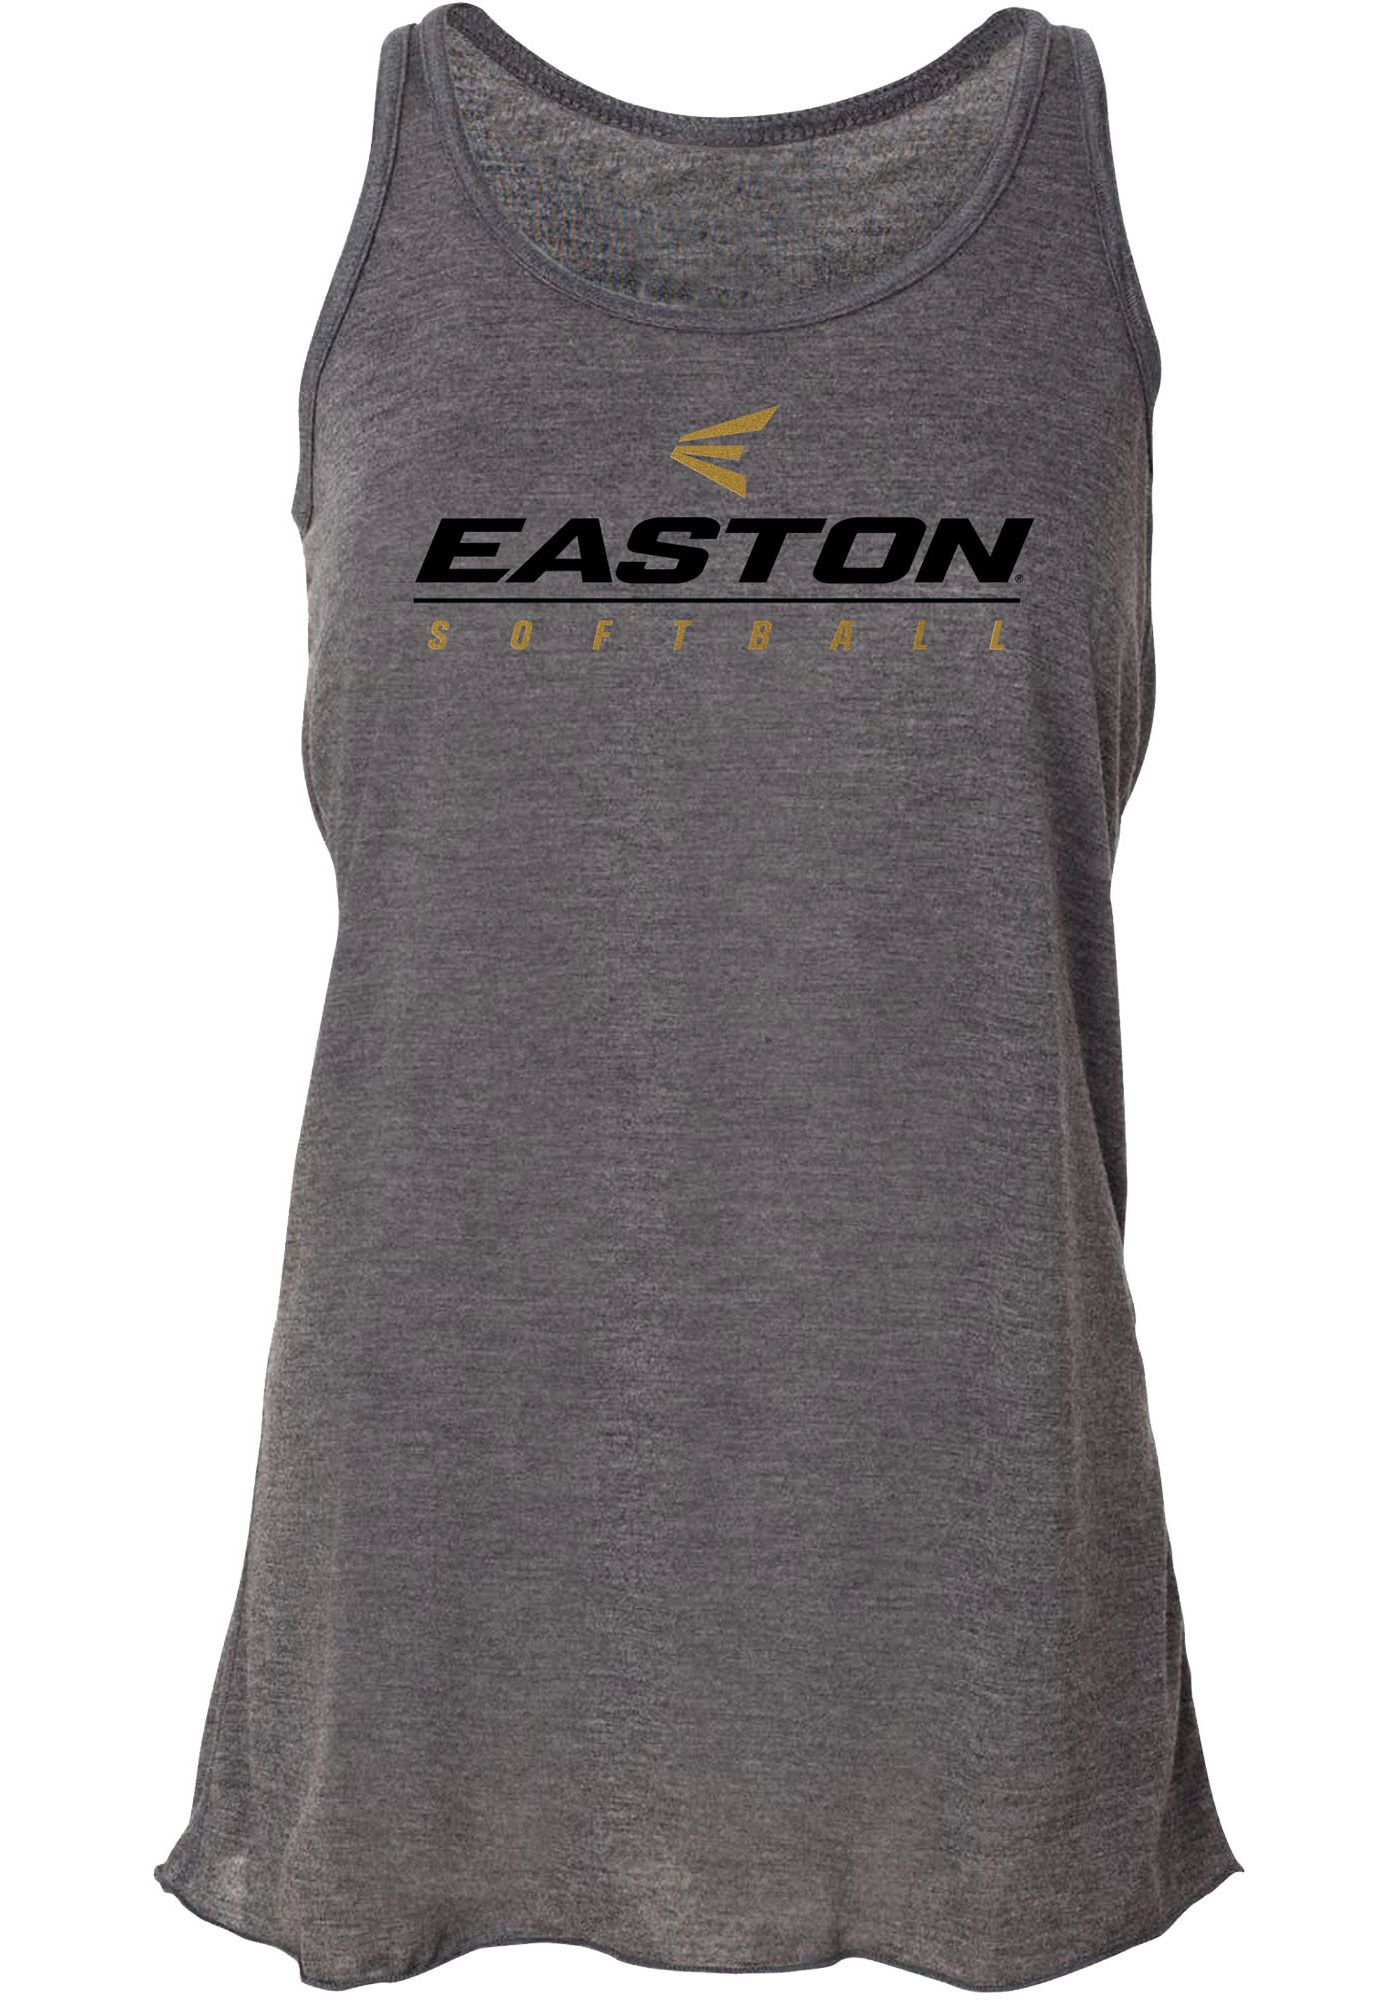 Easton Women's Softball Tank Top